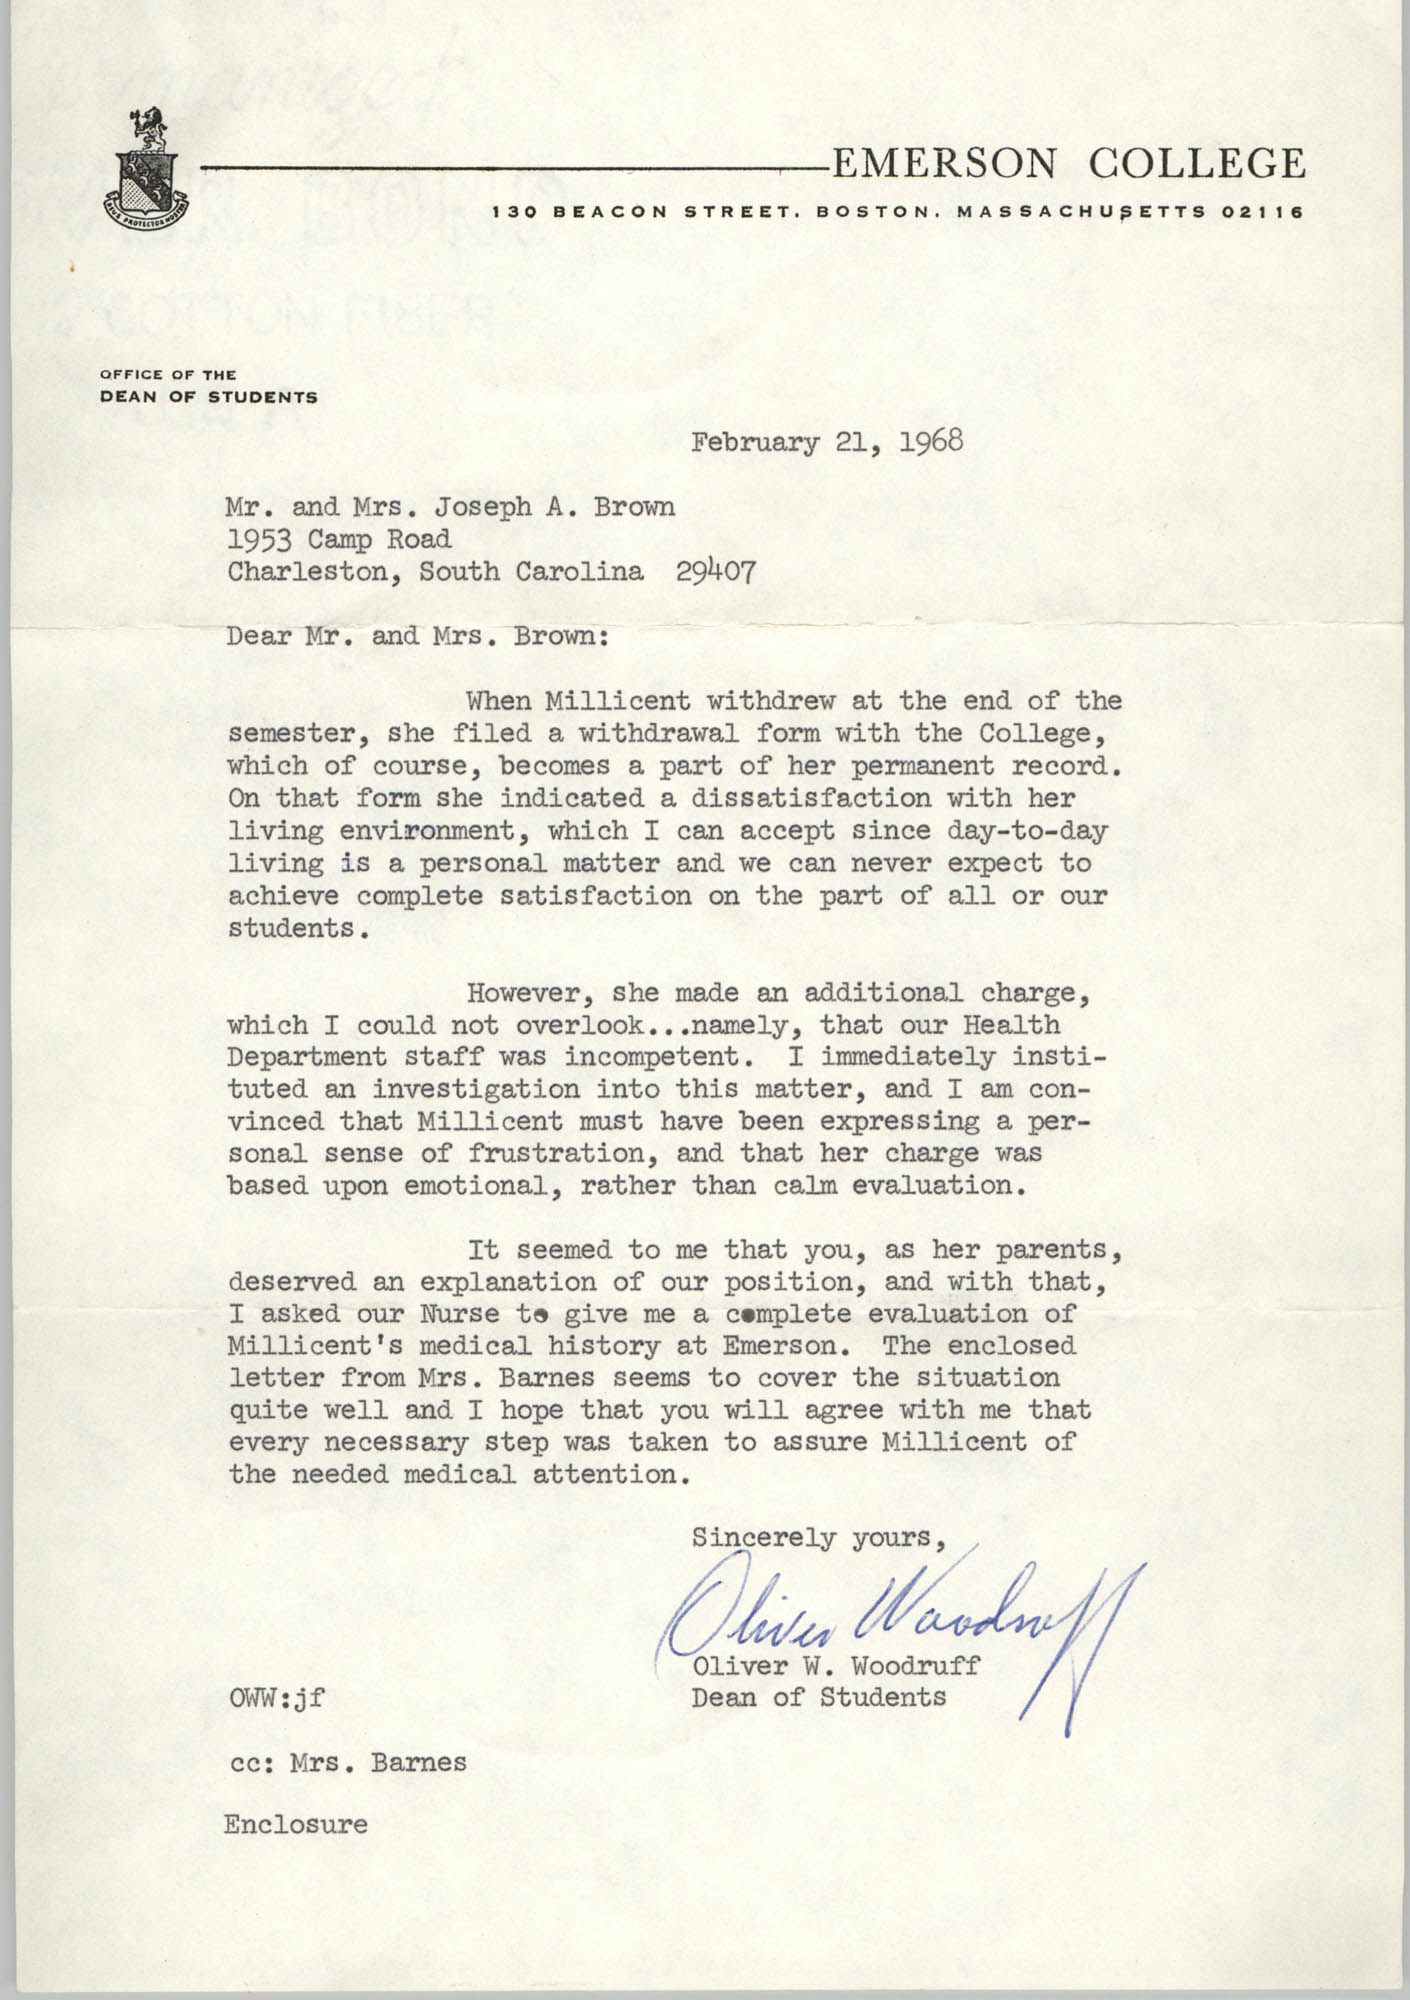 Letter from Oliver W. Woodruff to Mr. and Mrs. J. Arthur Brown, February 21, 1968